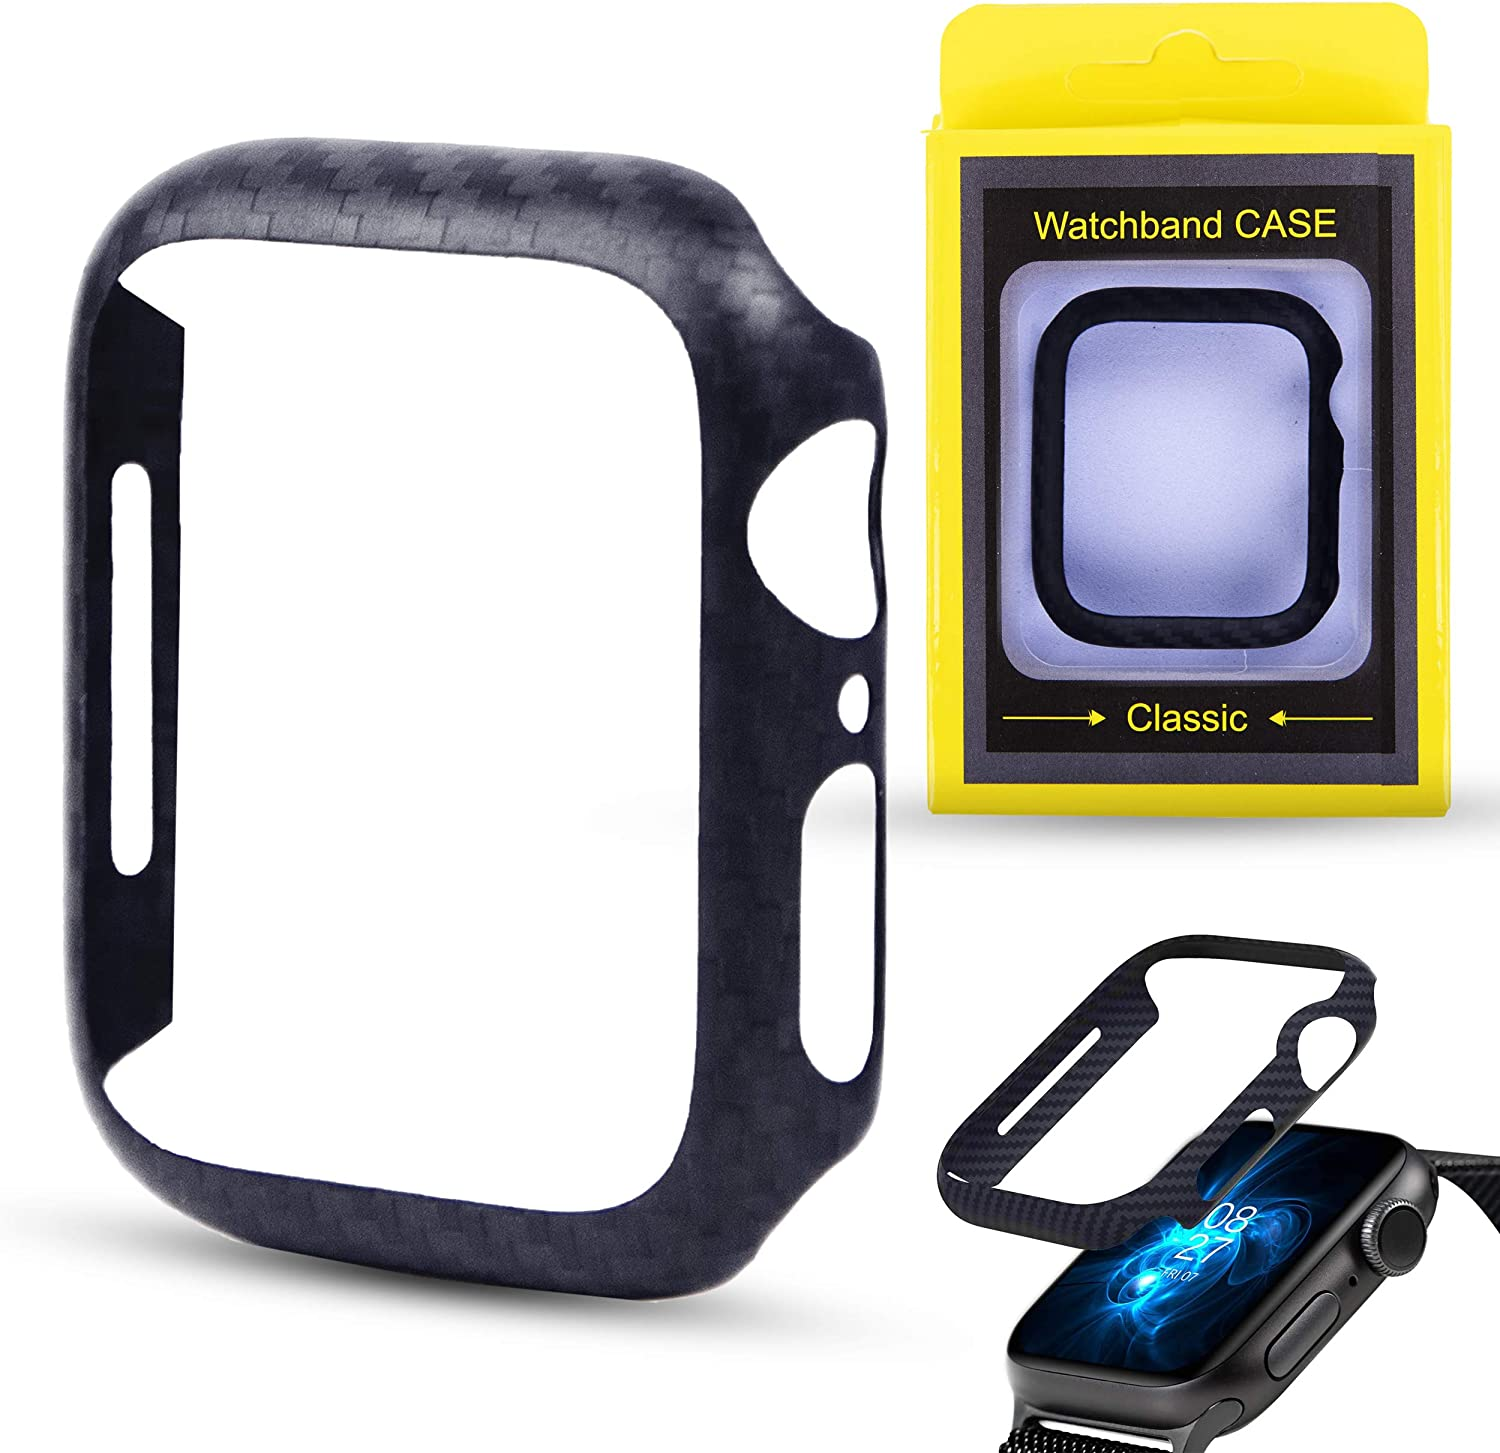 Safedome Carbon Fiber Luxury Watch Case for Apple Watch Series 6/5 / 4, Shockproof Durable with Premium Matte Twill Weave Finish (44MM)